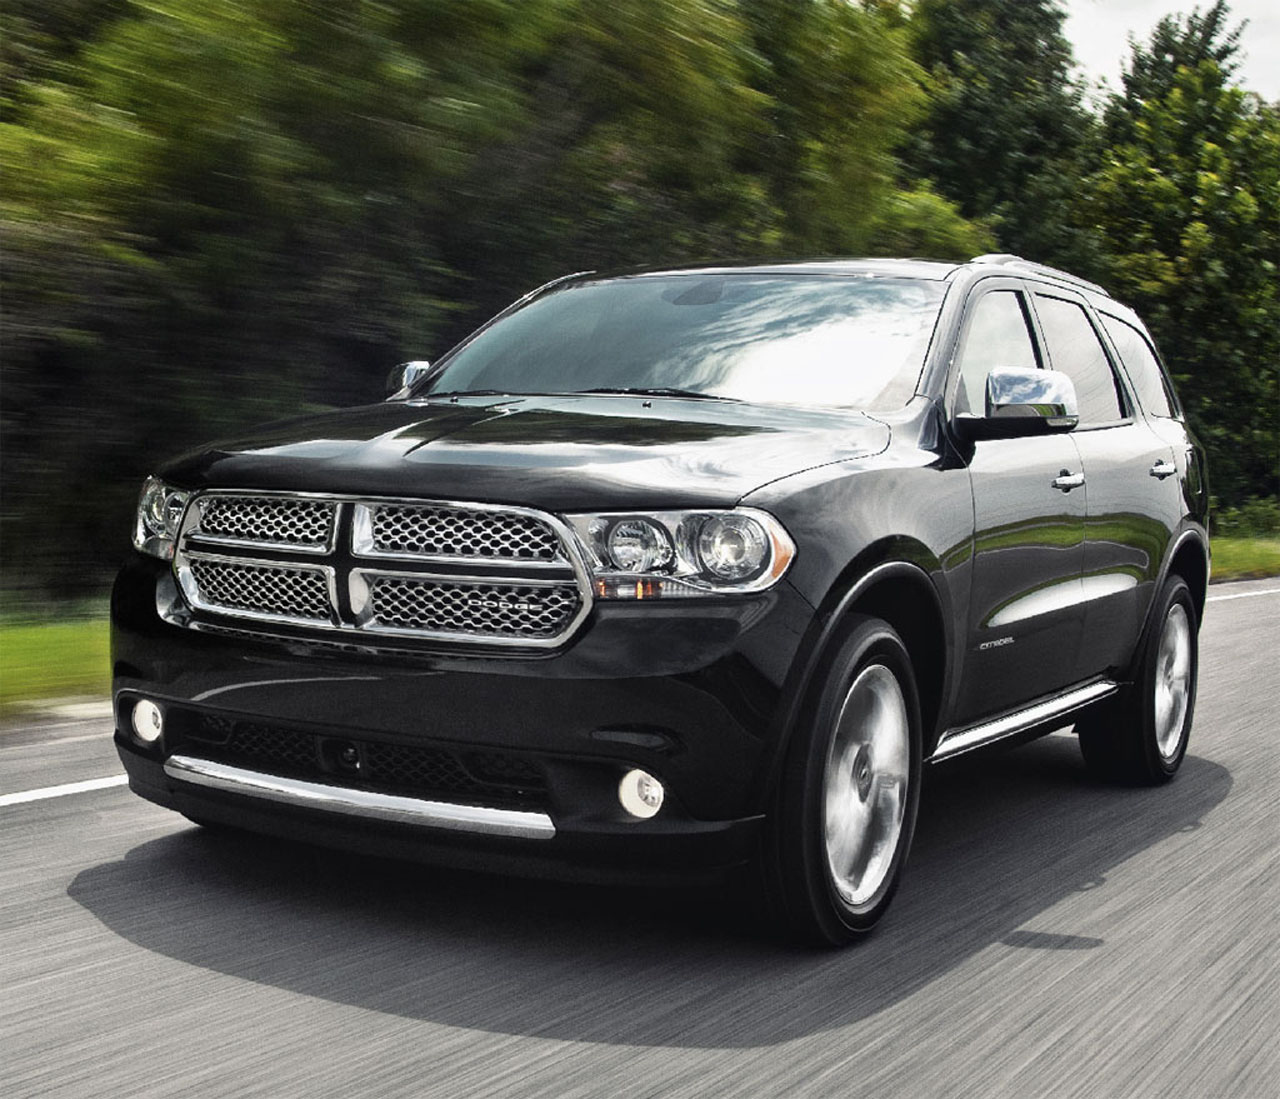 2011 dodge durango suv autoblogzine. Black Bedroom Furniture Sets. Home Design Ideas